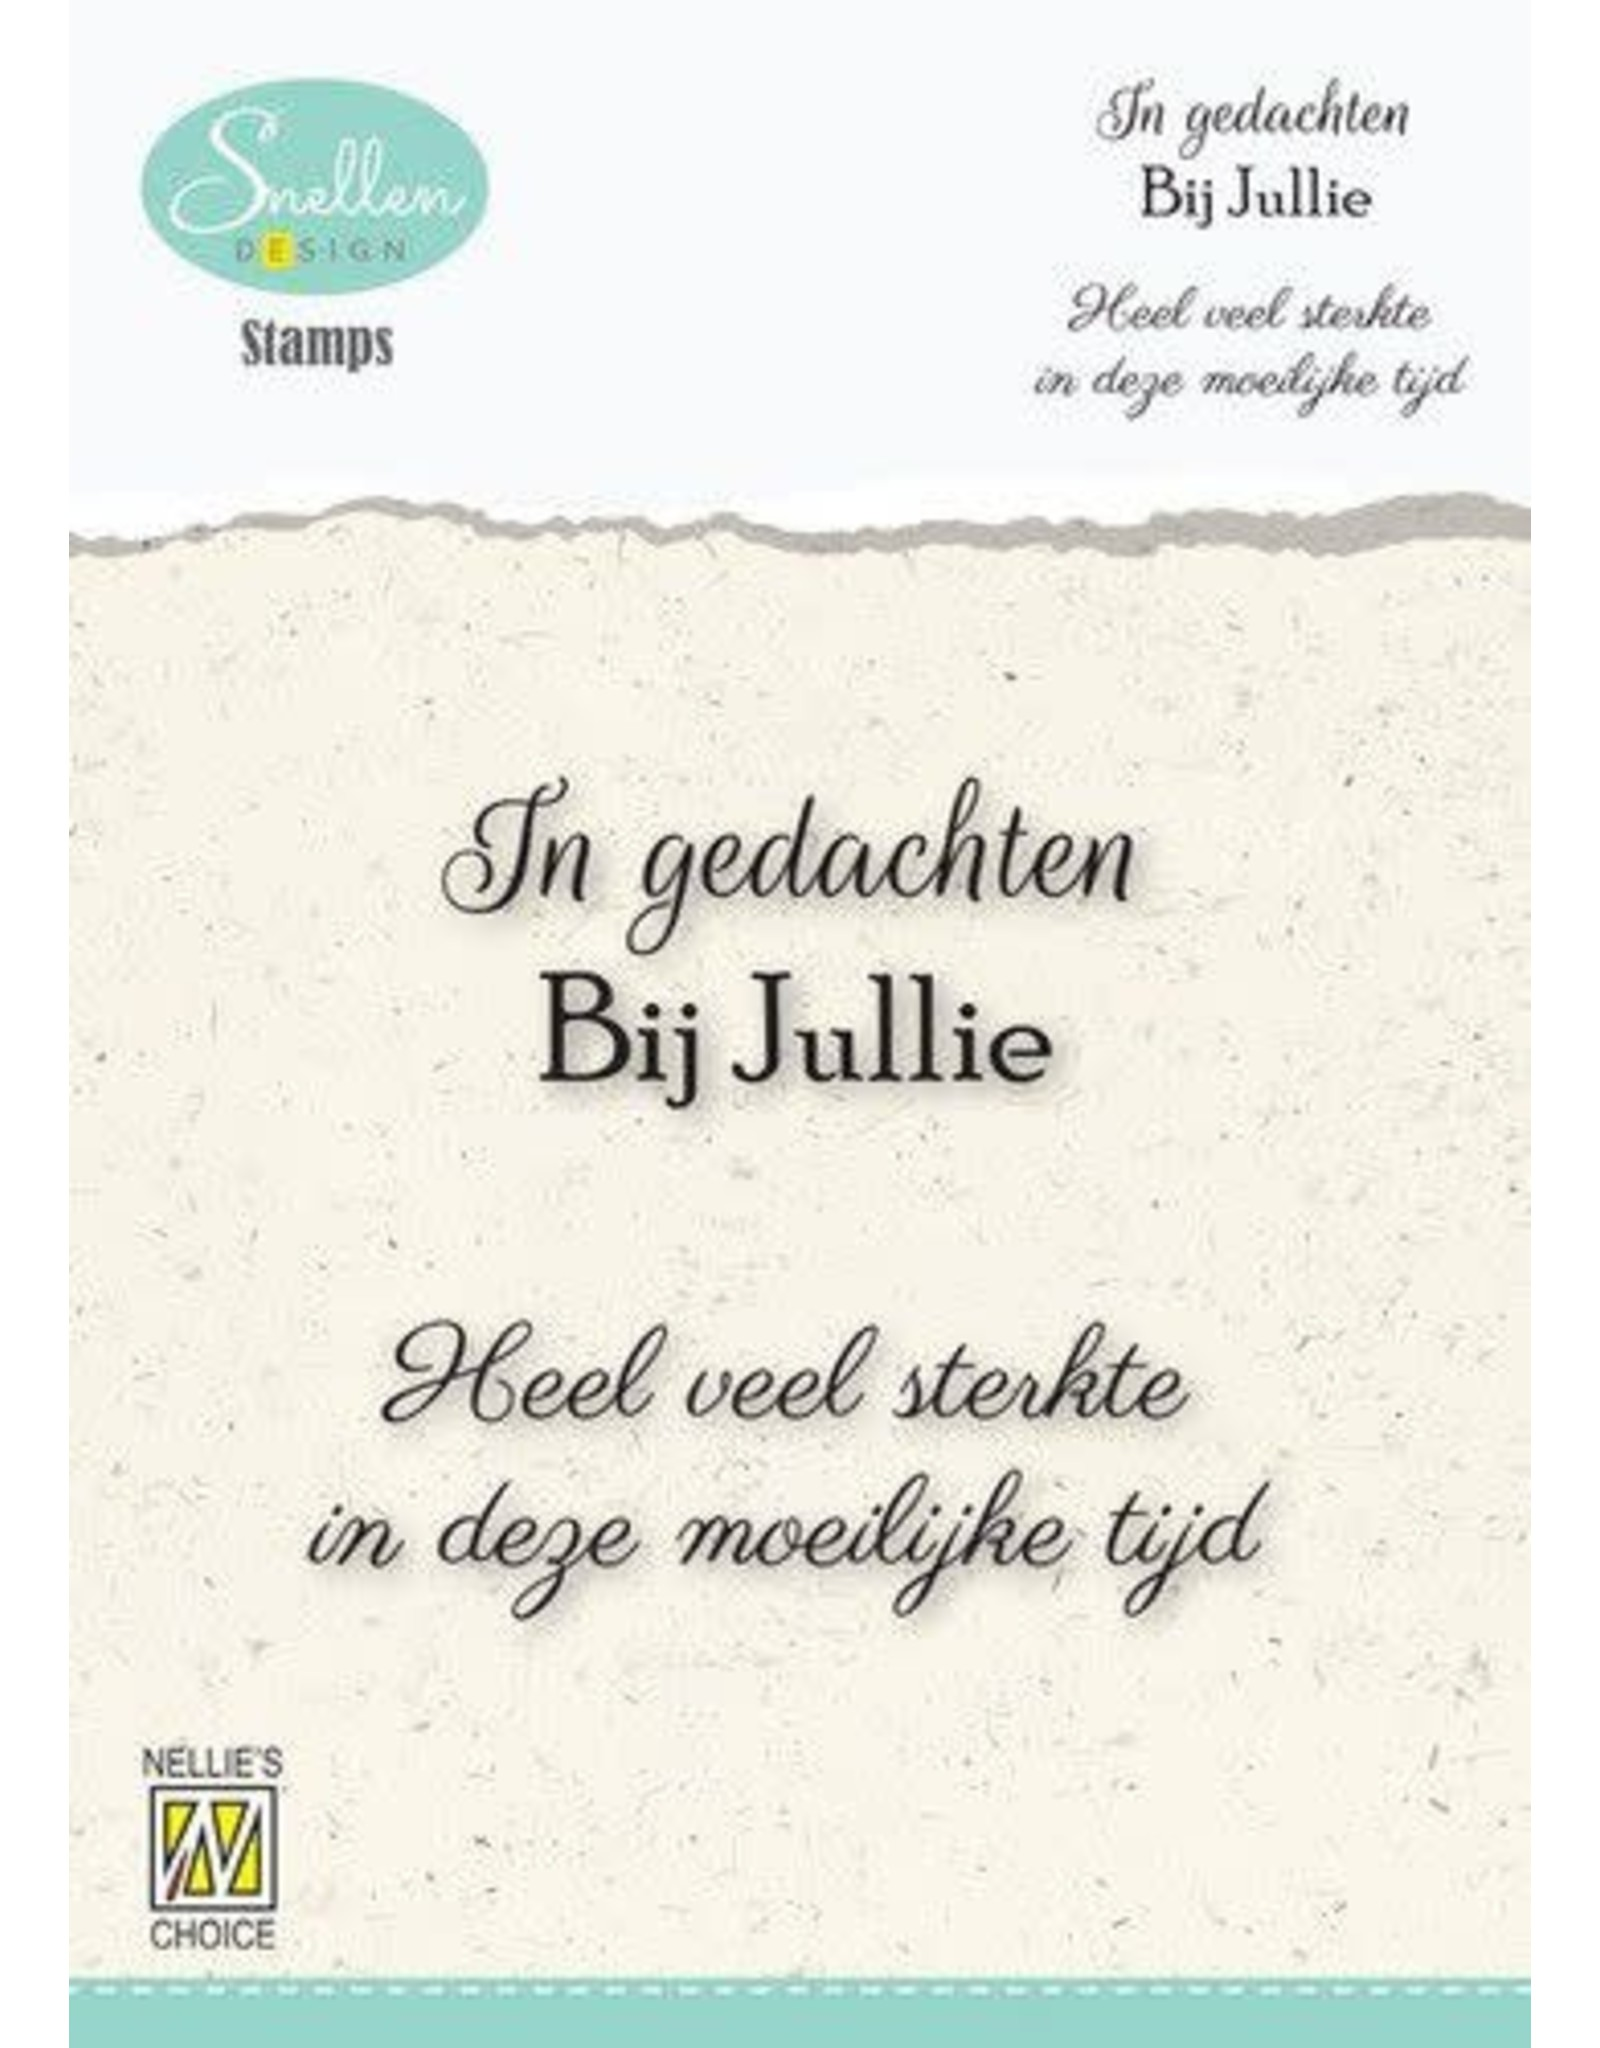 Nellie's Choice Nellie's Choice Clear Stamps - (NL) In gedachten bij jullie… Dutch Condolence Text Clear Stamps 66x58mm